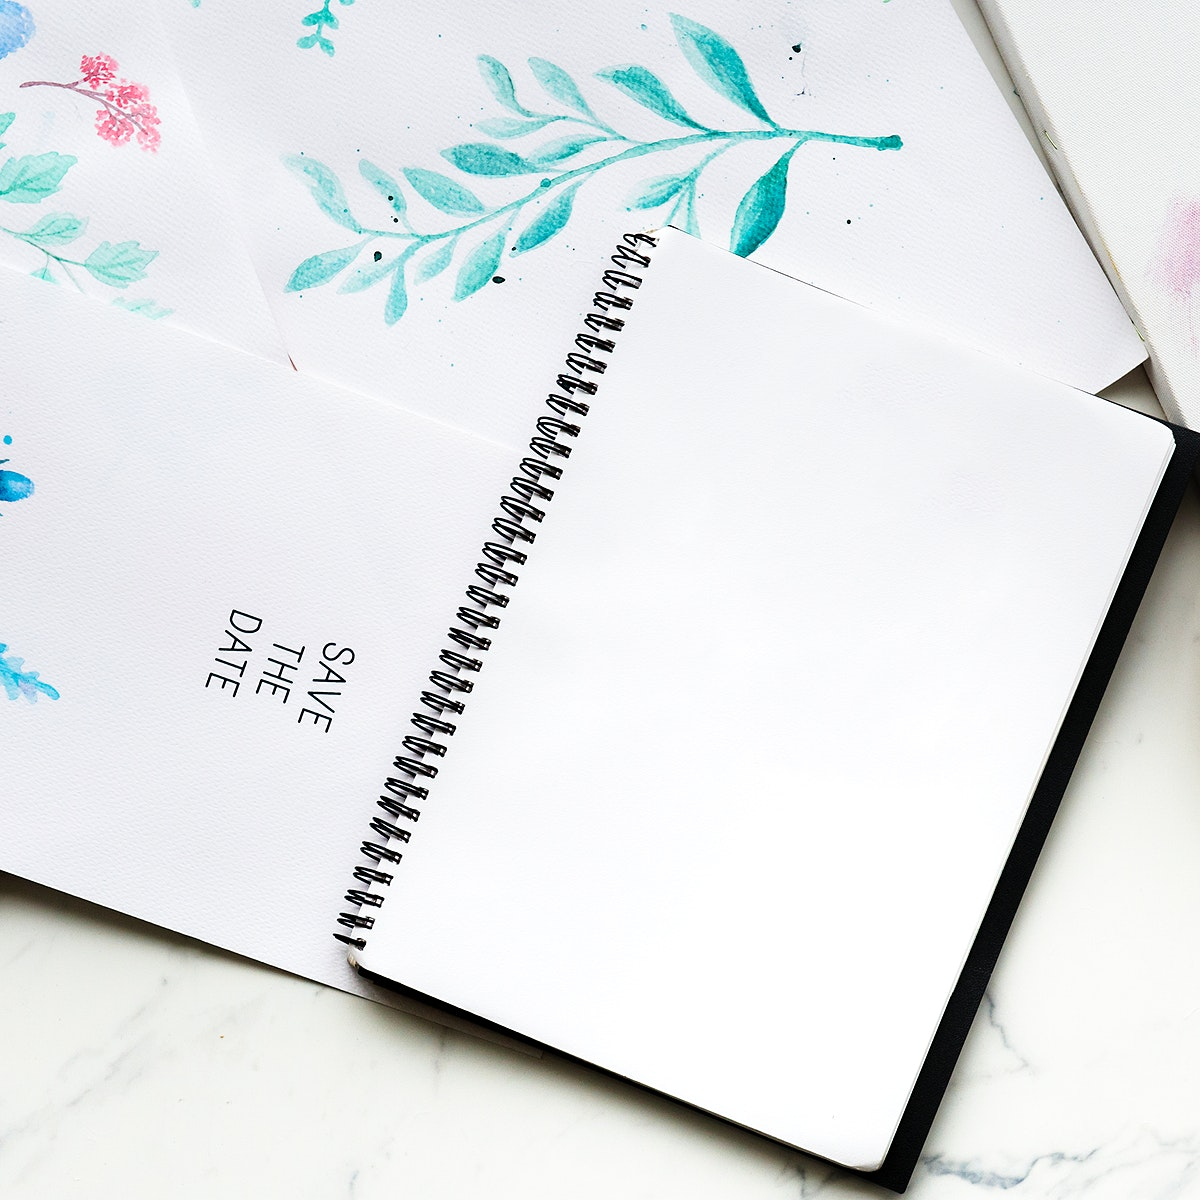 Blank copy-space notepad and drawing of foliage